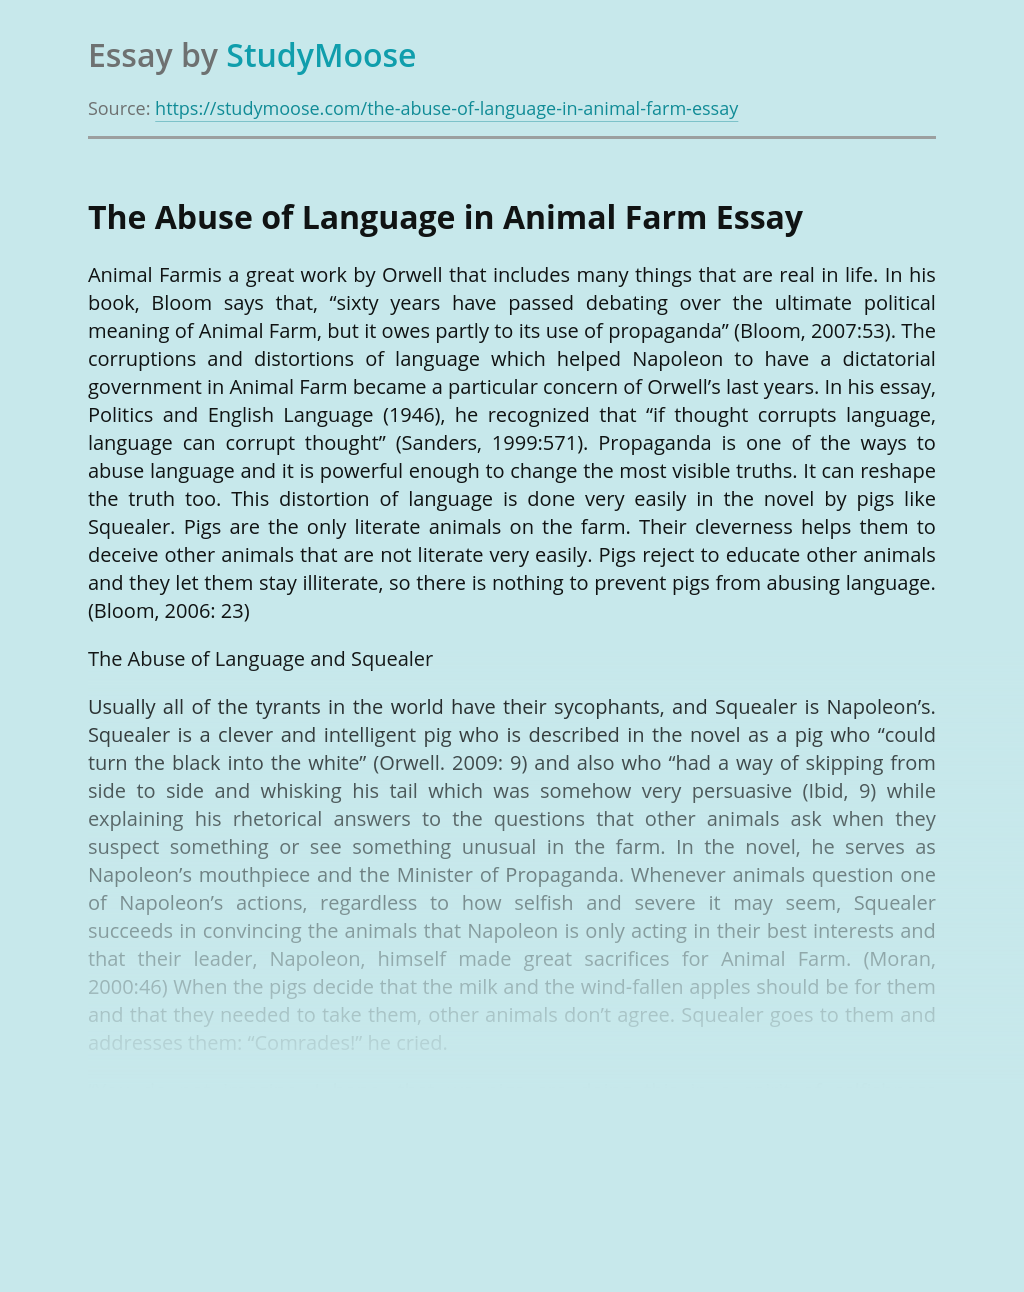 The Abuse of Language in Animal Farm